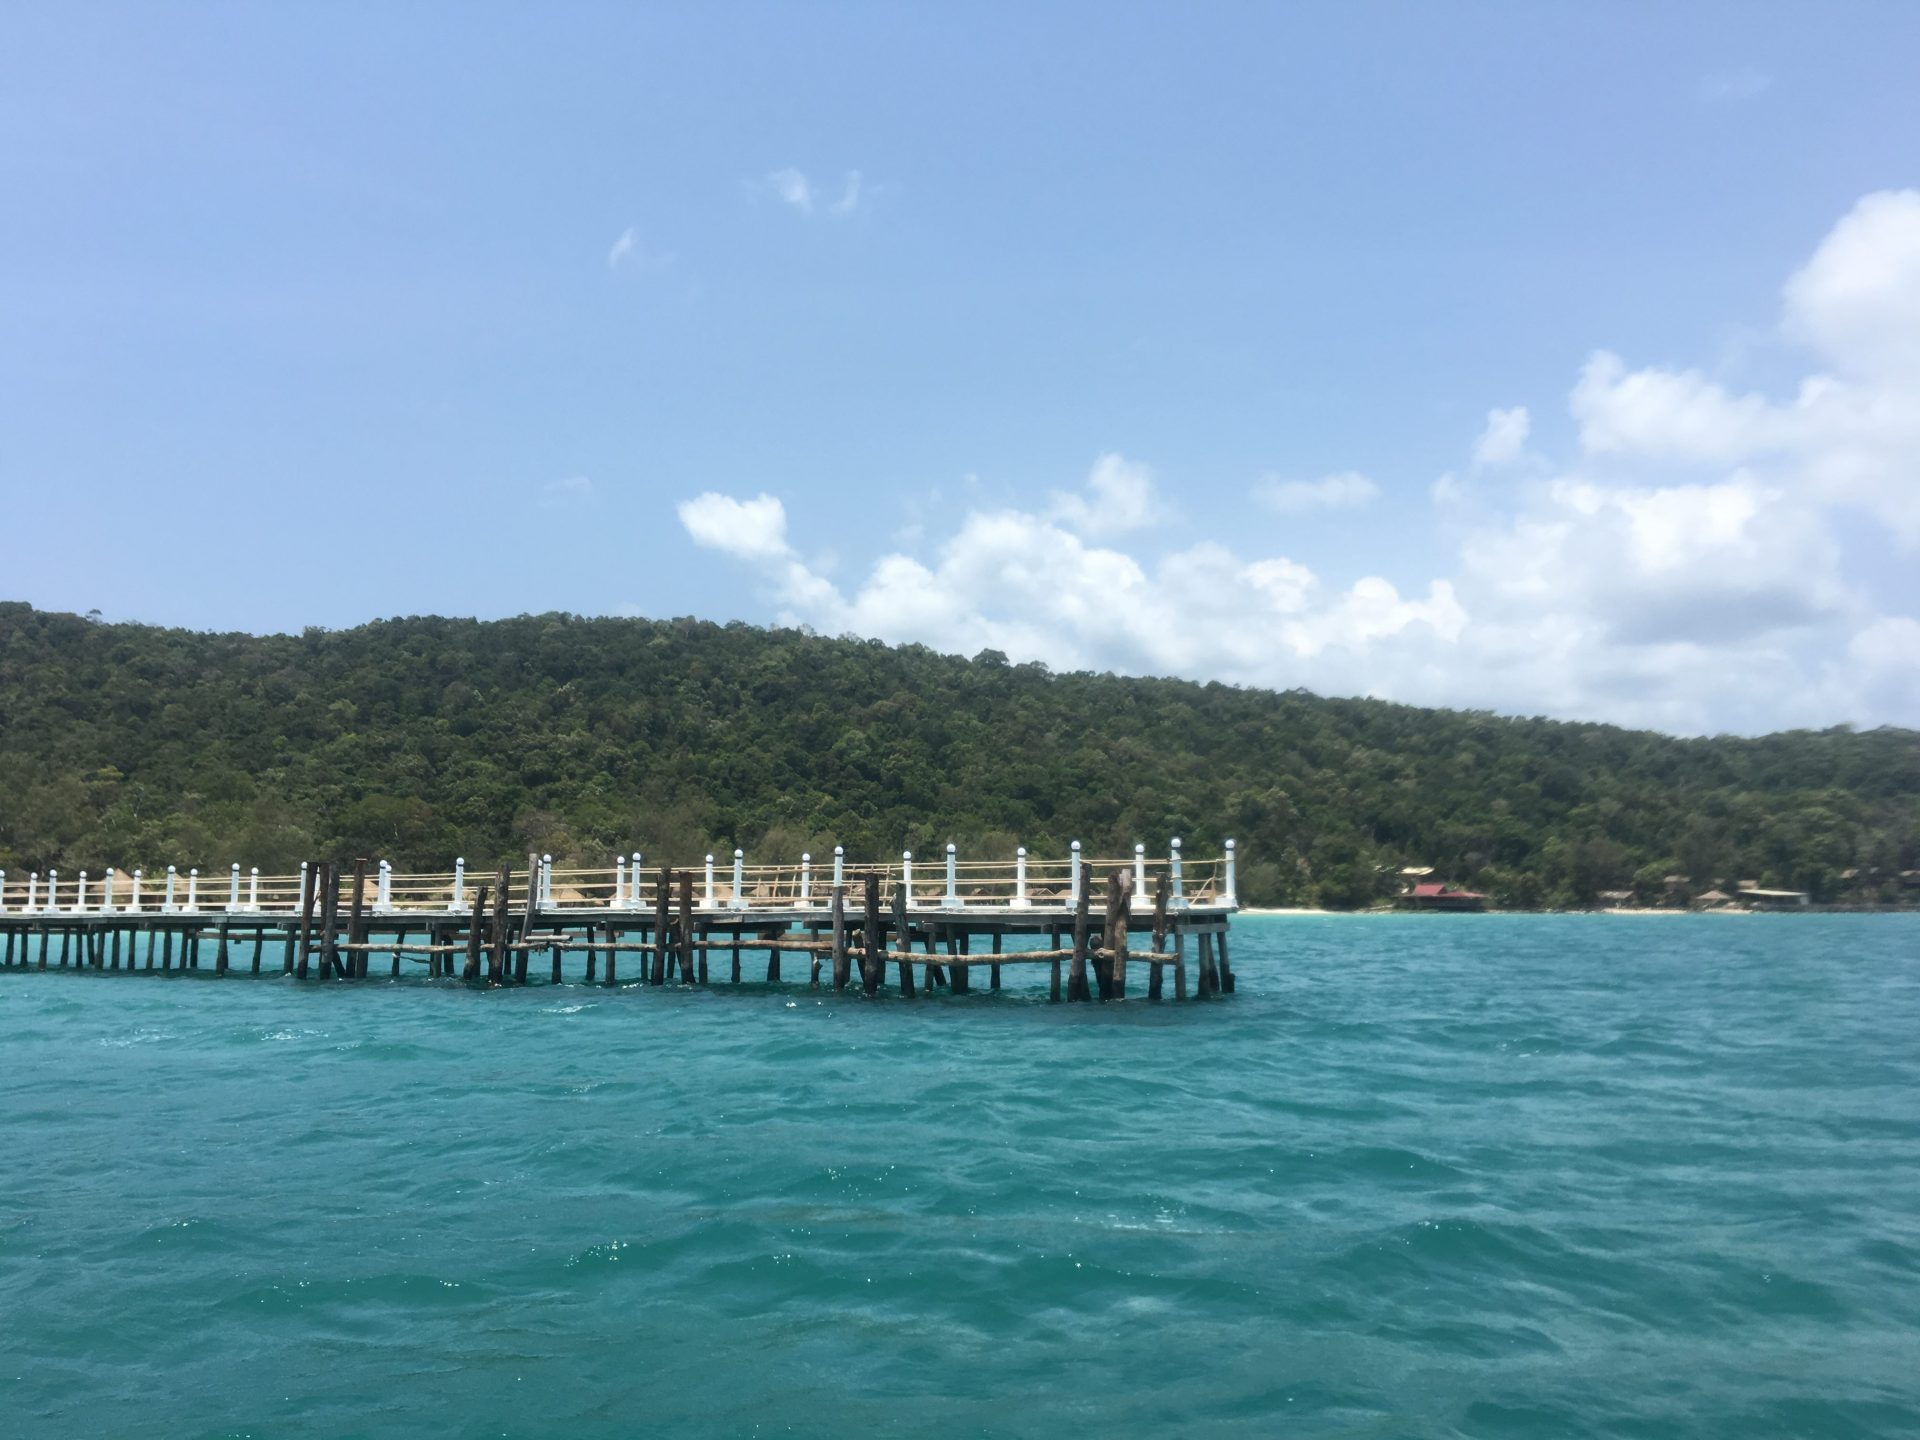 pier at nature beach, kohrong island